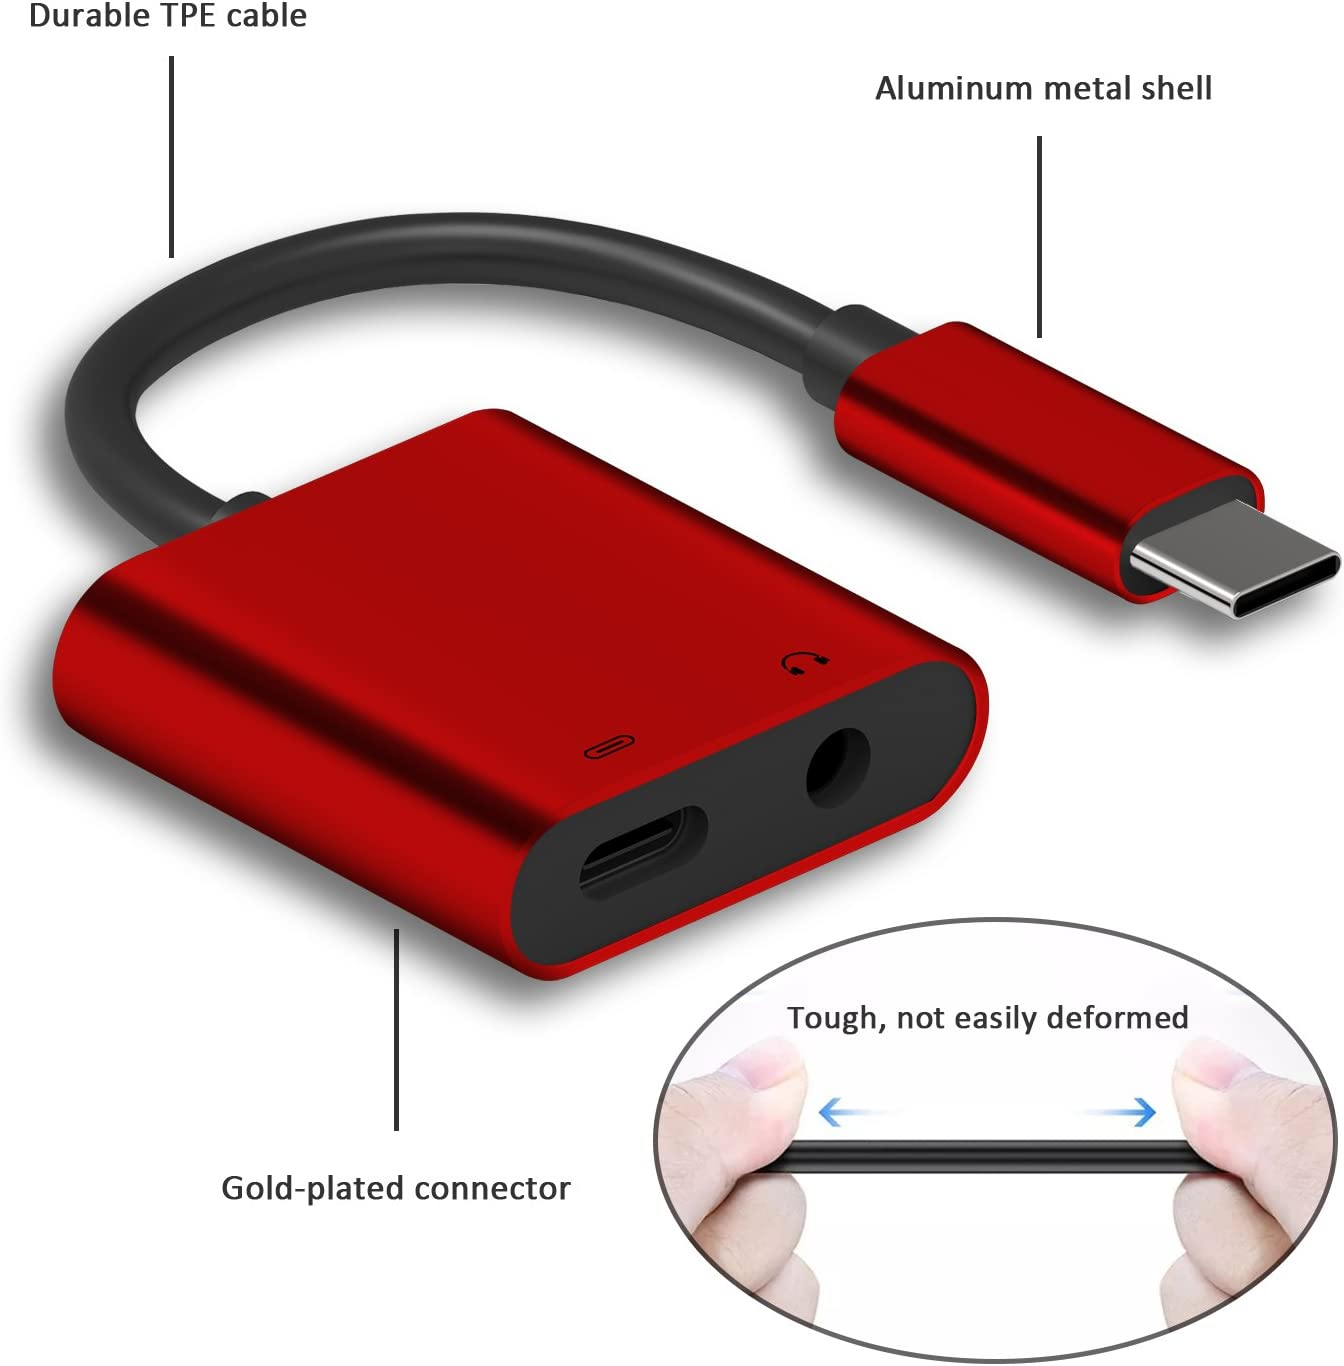 Dreamvasion USB-C to 3.5mm Aux Headphone Splitter and USB C PD Fast Charging Connector Cord with DAC /& Hi-Res for Google Pixel 2 2XL 2 in 1 Type C Audio Adapter and Charger HTC Huawei,Sony and More